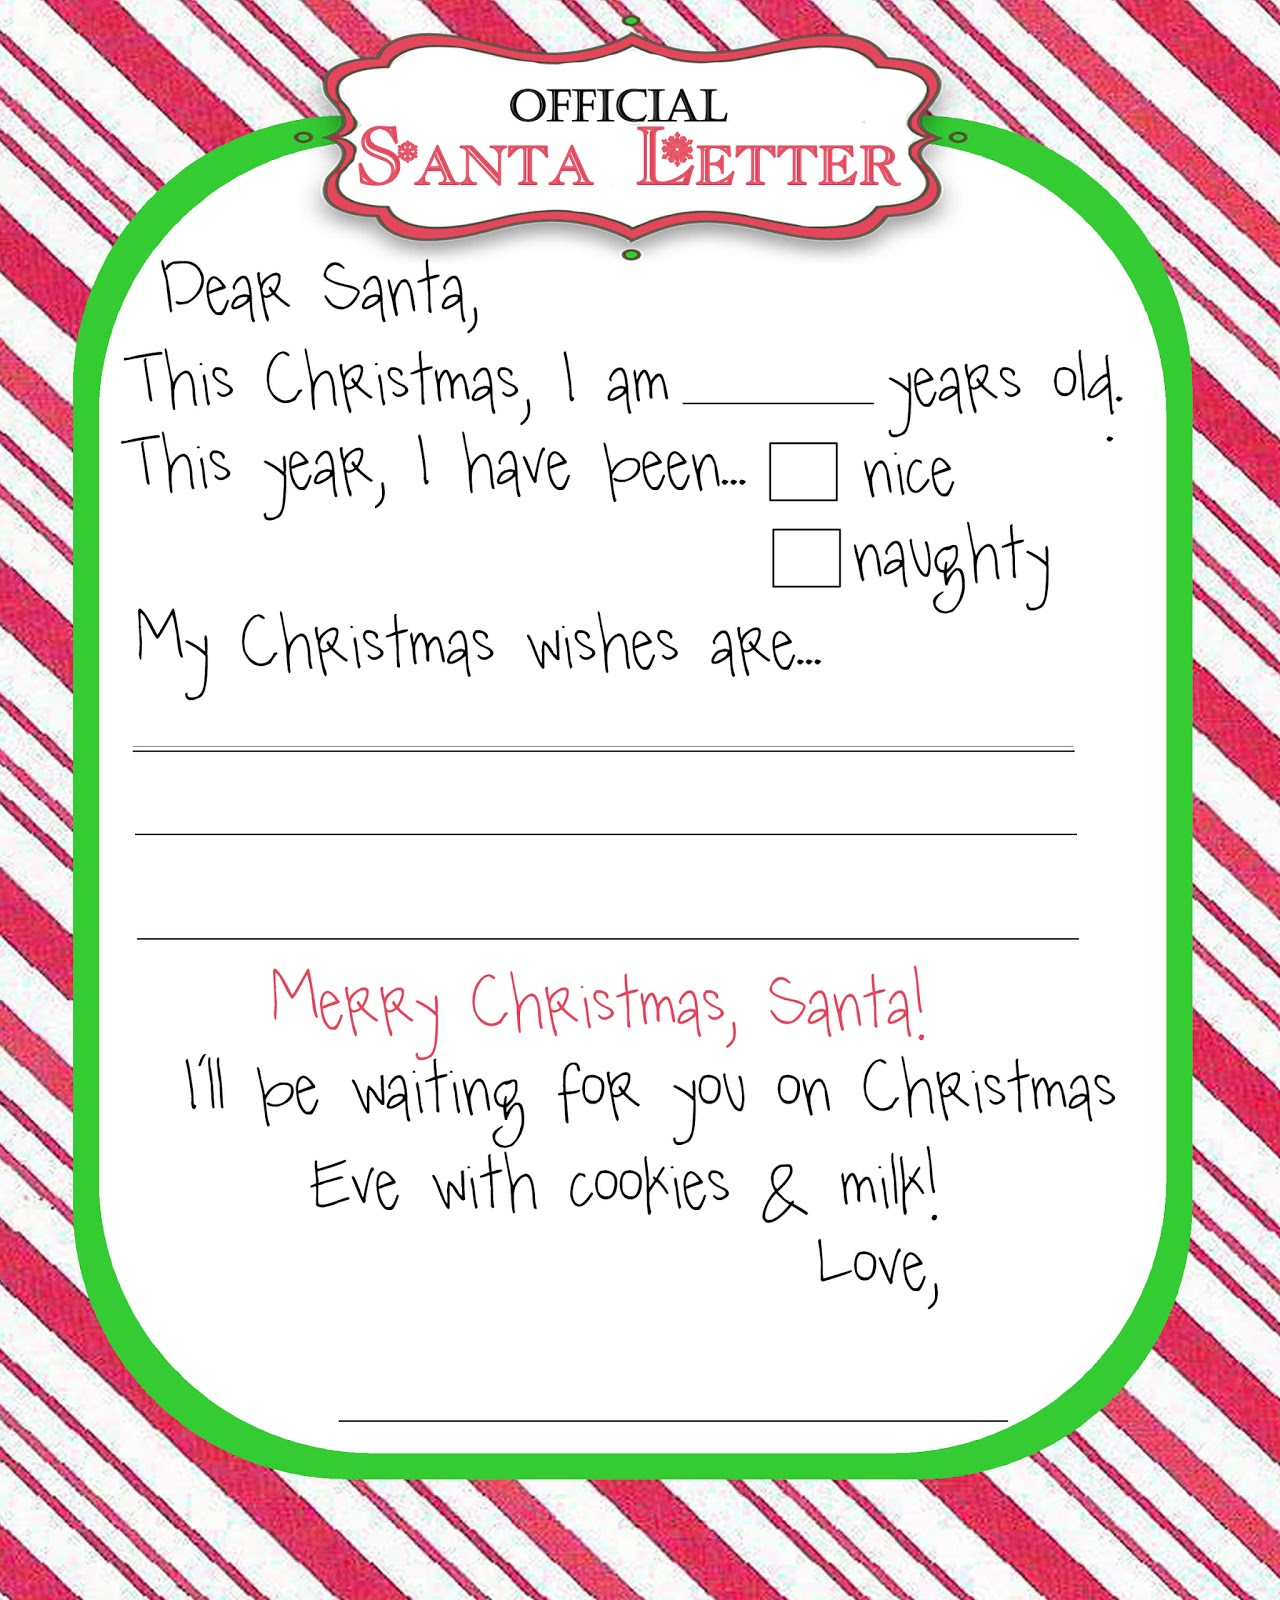 Dear santa letters templates example good resume template dear santa letters templates dear santa letter templates sweet sugar mama moo moos and tutus manic spiritdancerdesigns Image collections